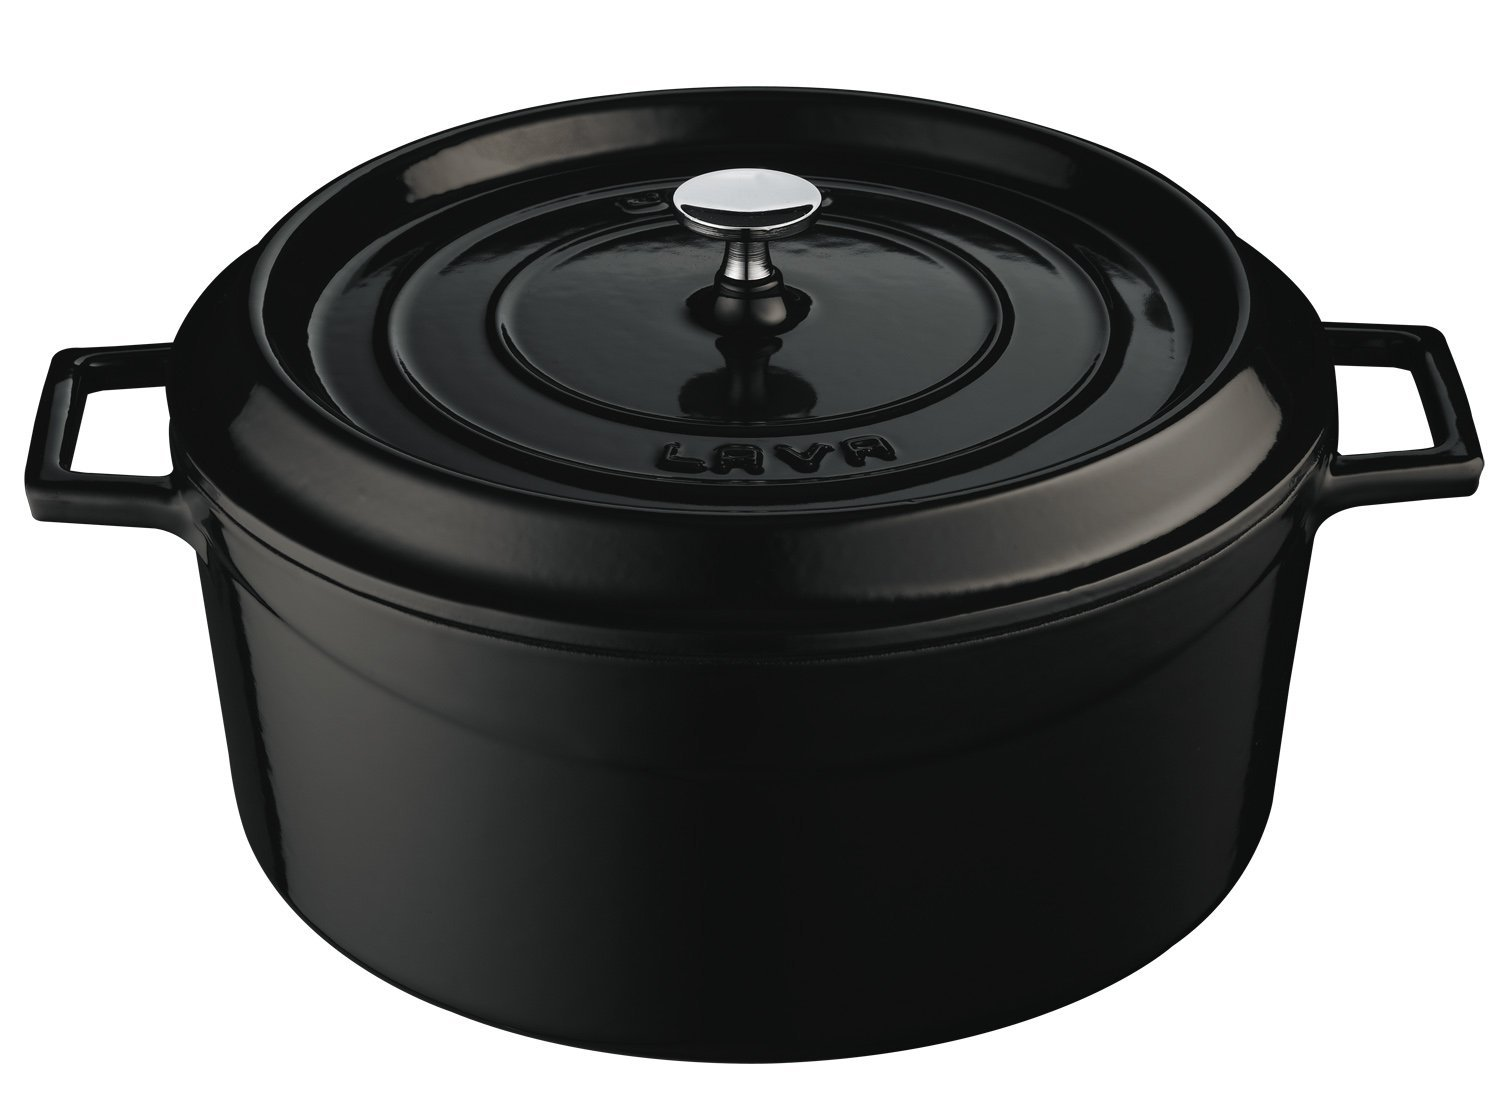 Lava Signature Enameled Cast-Iron Round Dutch Oven - 7 Quart, Obsidian Black